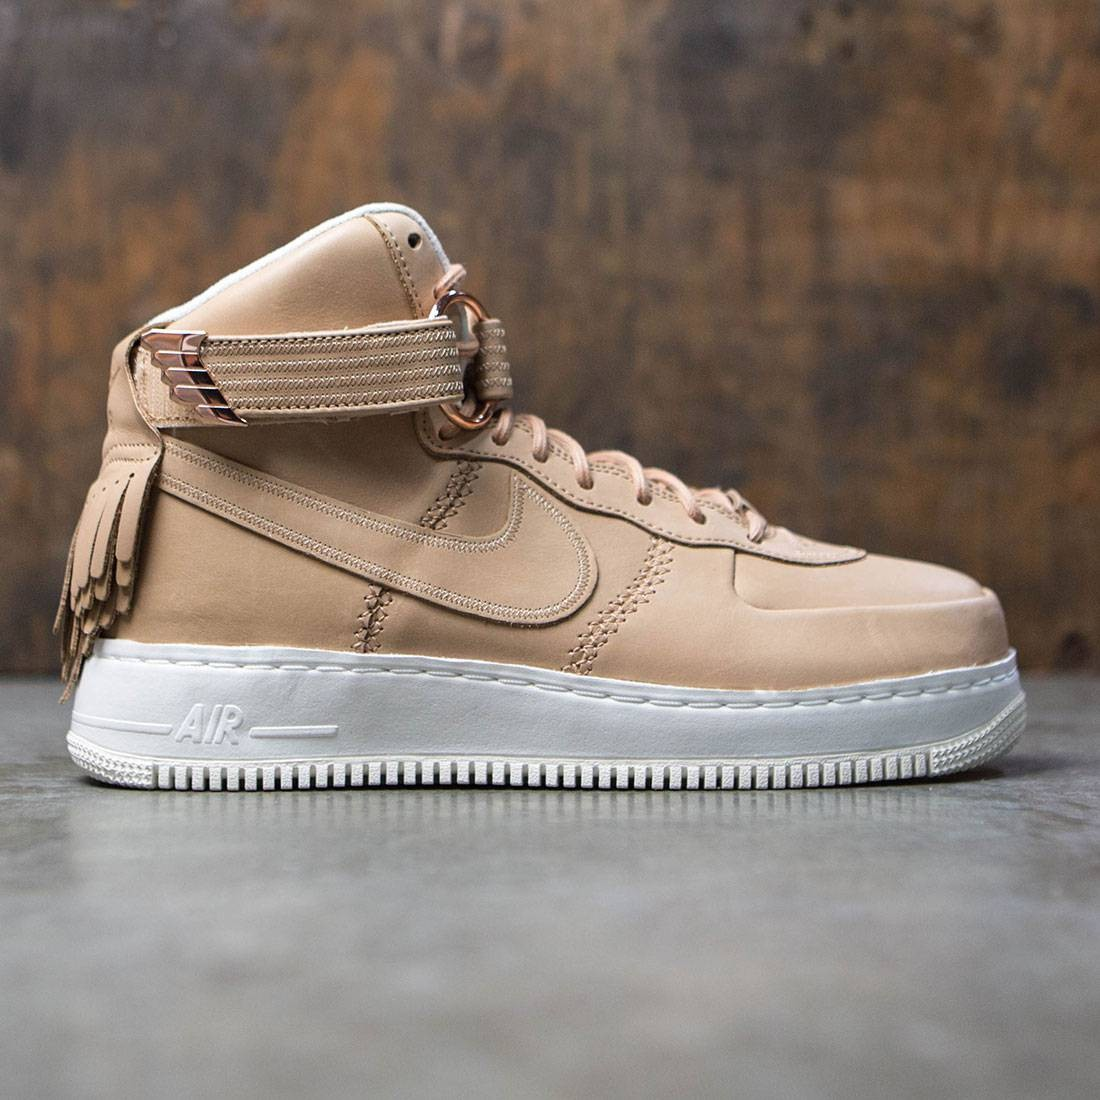 Buy Nike AIR FORCE 1 HIGH SL Pink | 919473 | Rezet Store